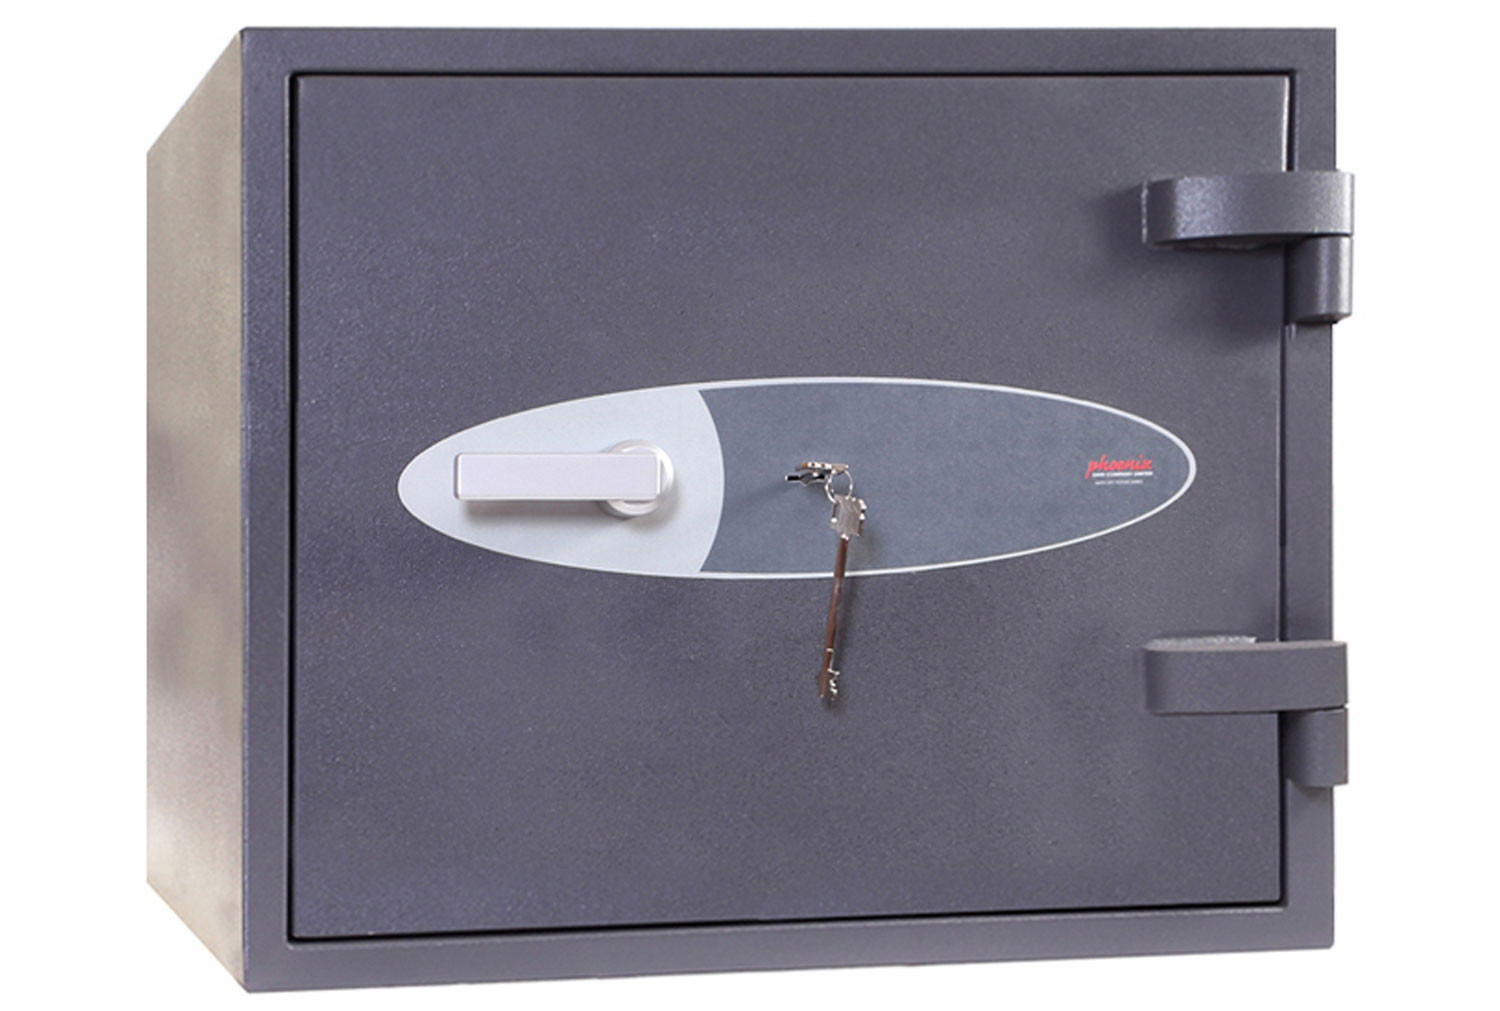 Phoenix Neptune HS1052K High Security Safe With Key Lock (46ltrs)